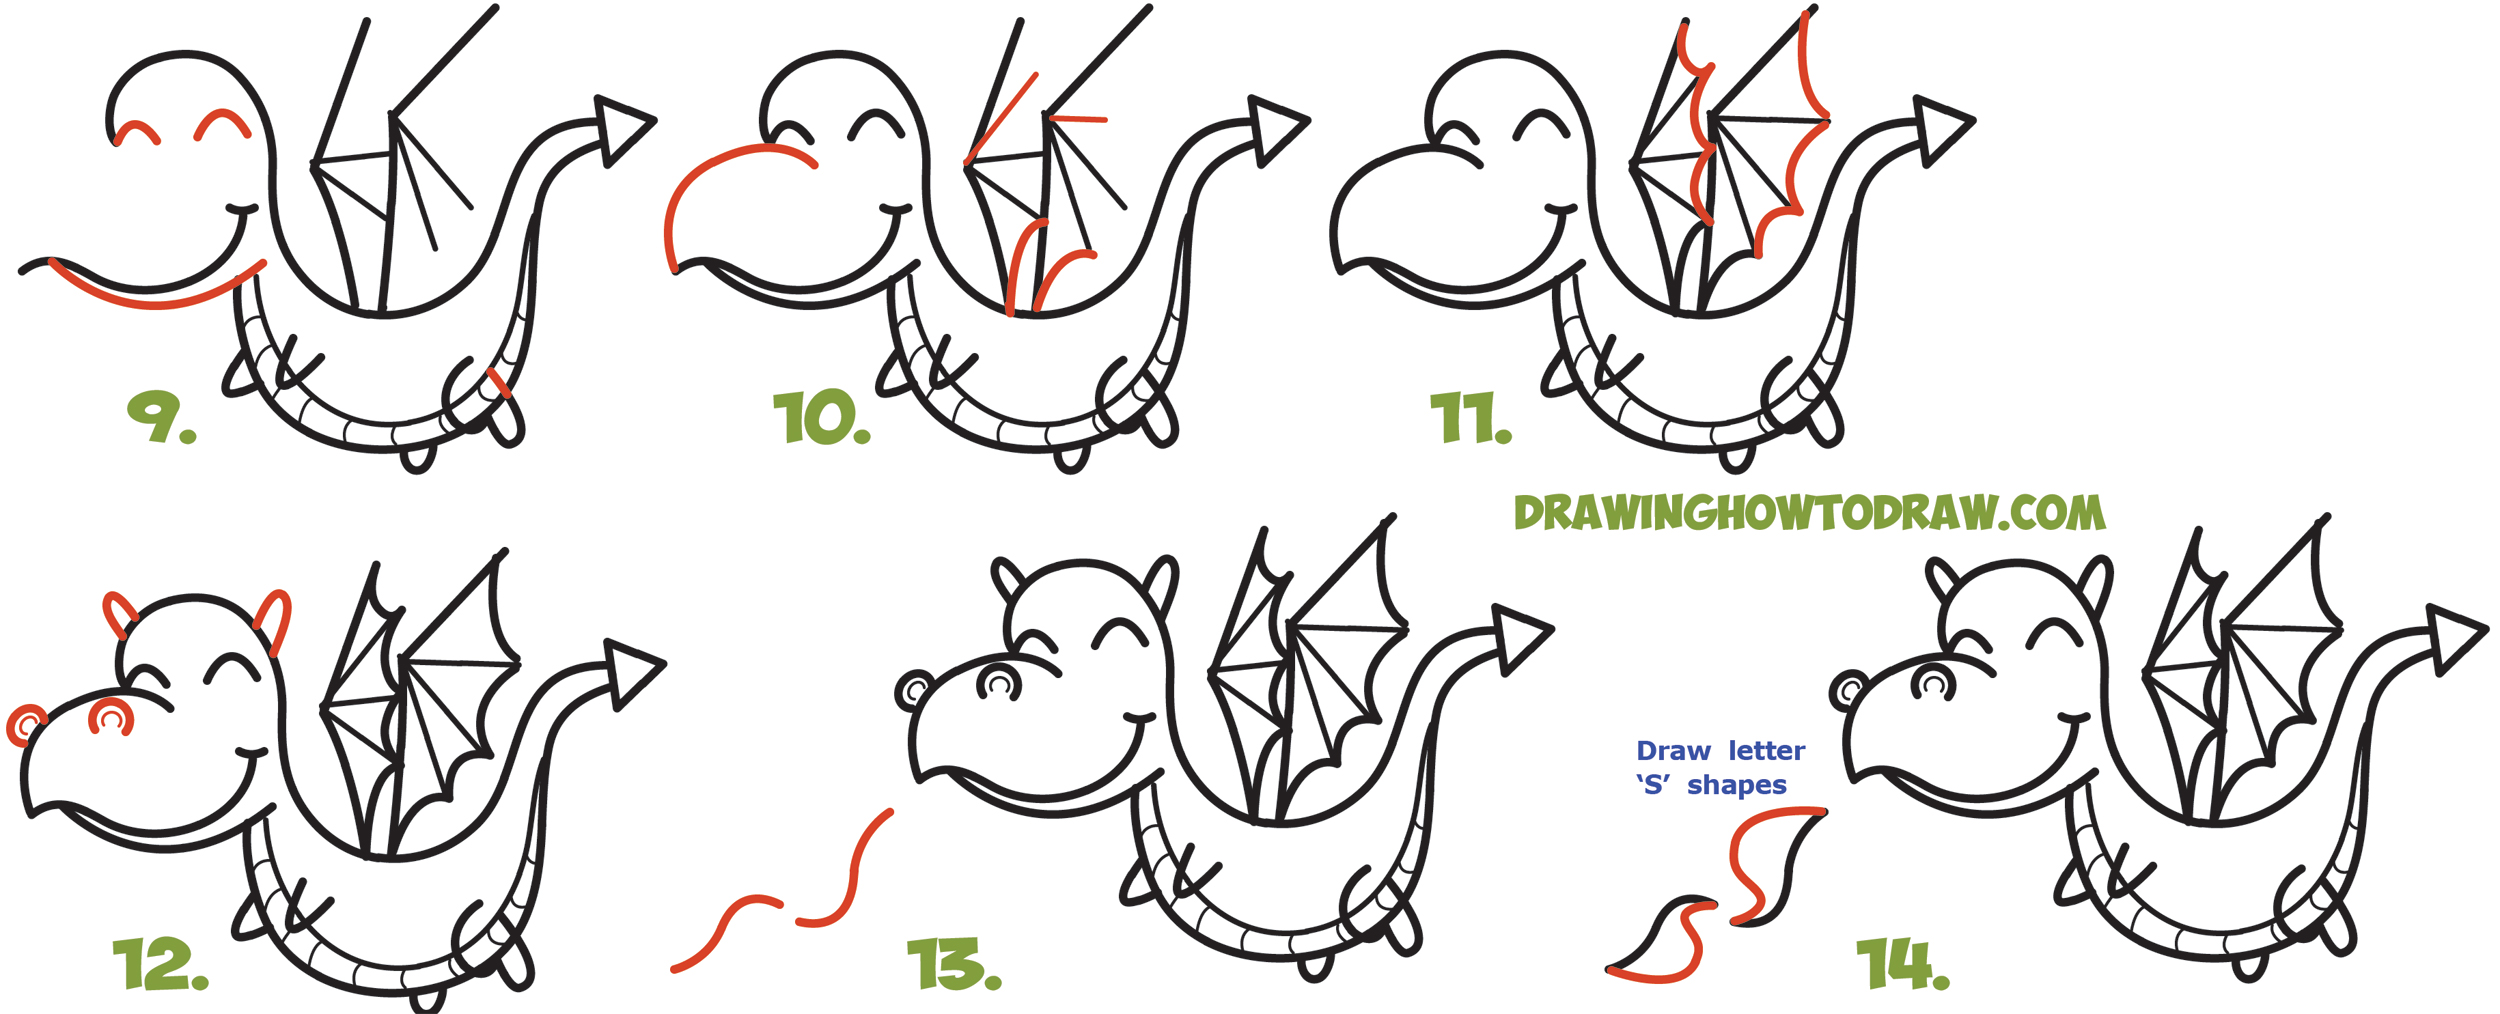 How to Draw a Cute Kawaii / Chibi Dragon Shooting Fire with Easy Step by Step Drawing Tutorial for Kids and Beginners